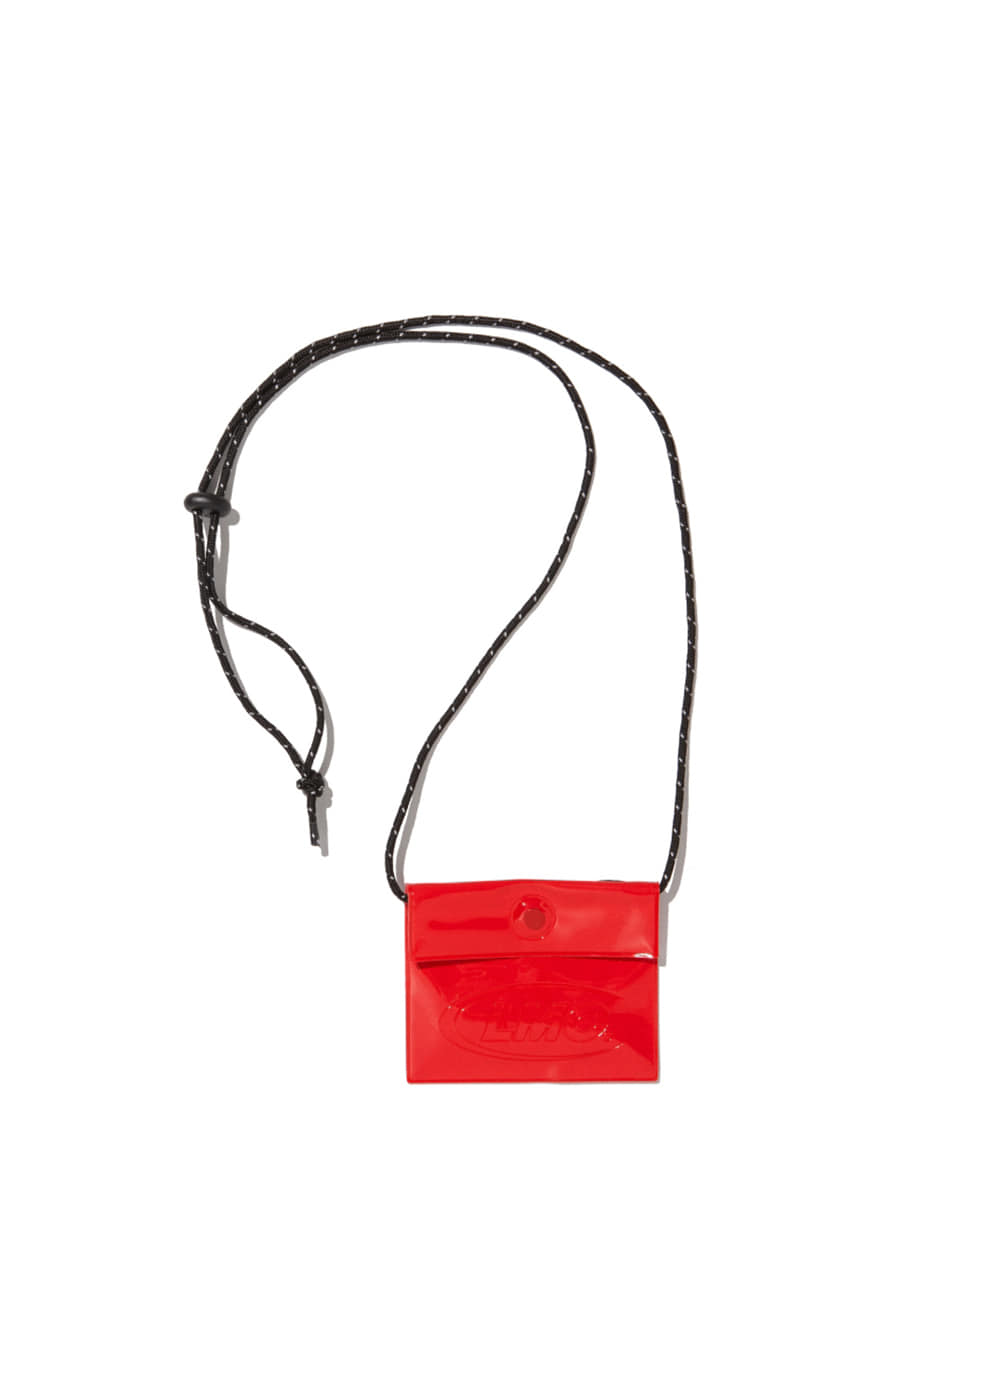 LMC PVC COIN POUCH red